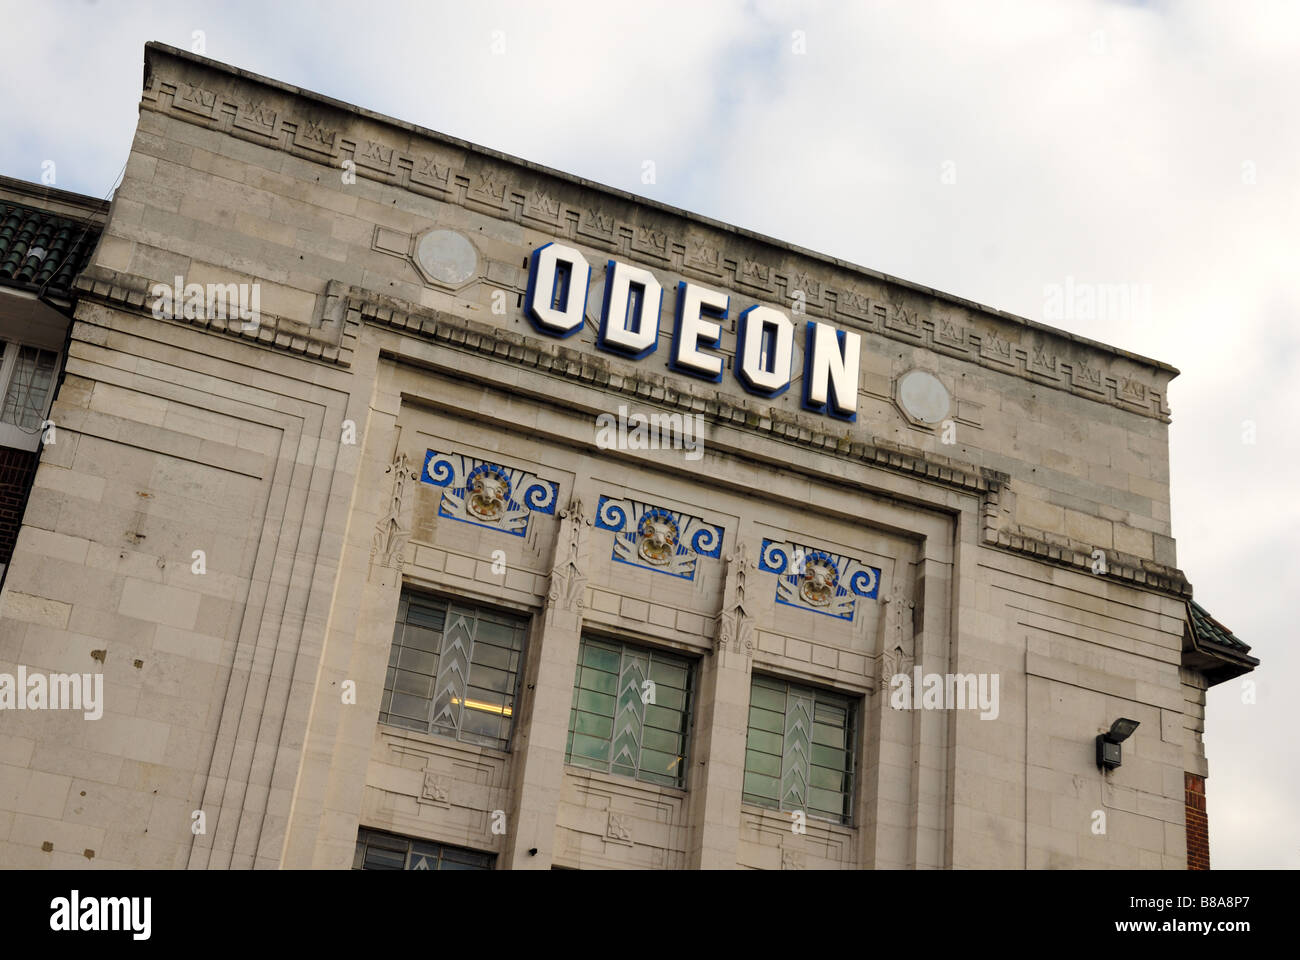 Odeon cinema front - Stock Image